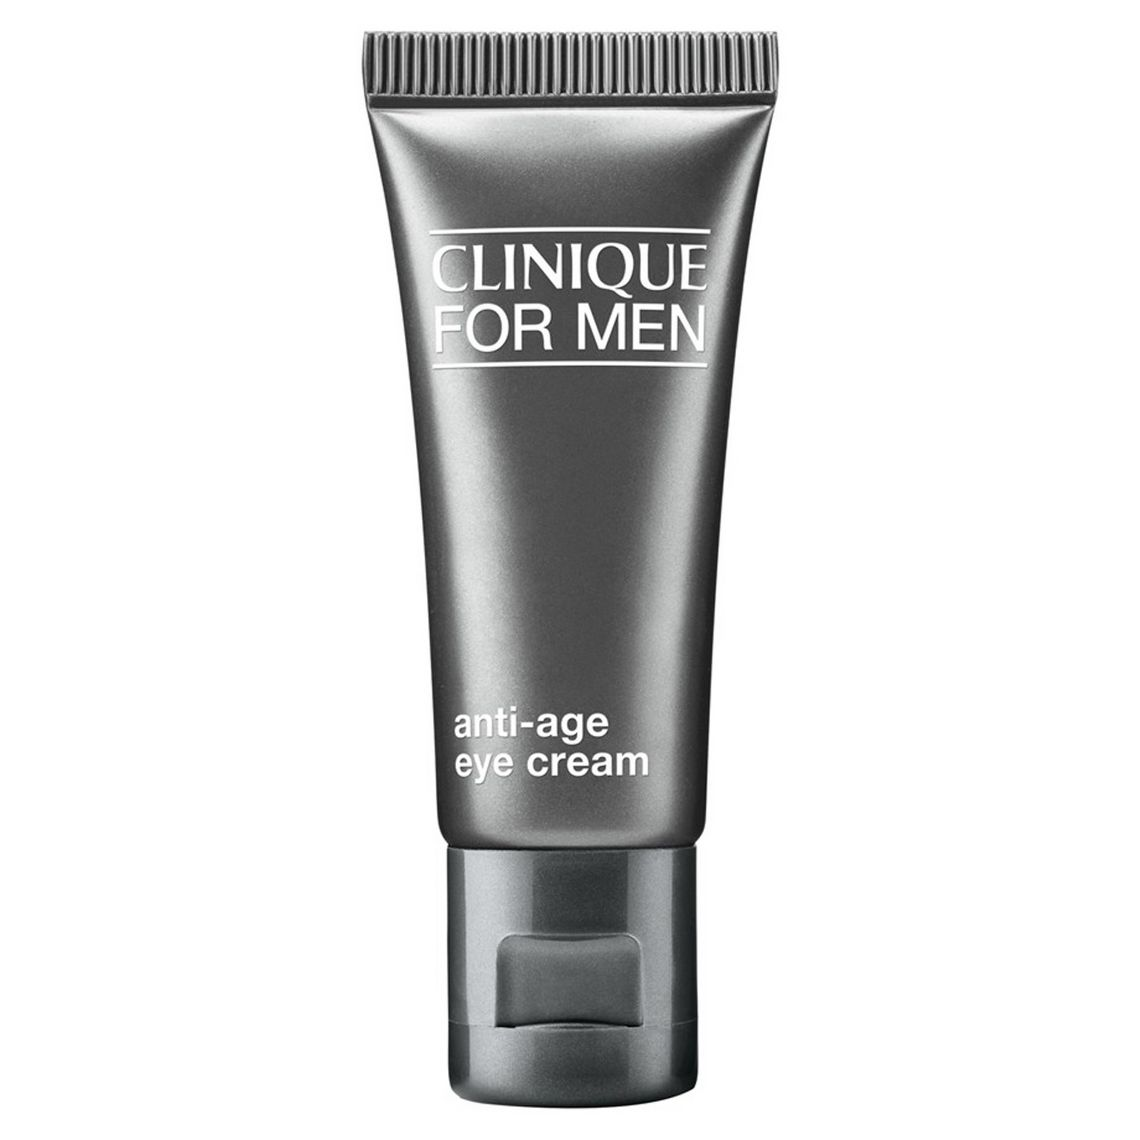 Anti Age Eye Cream: Clinique